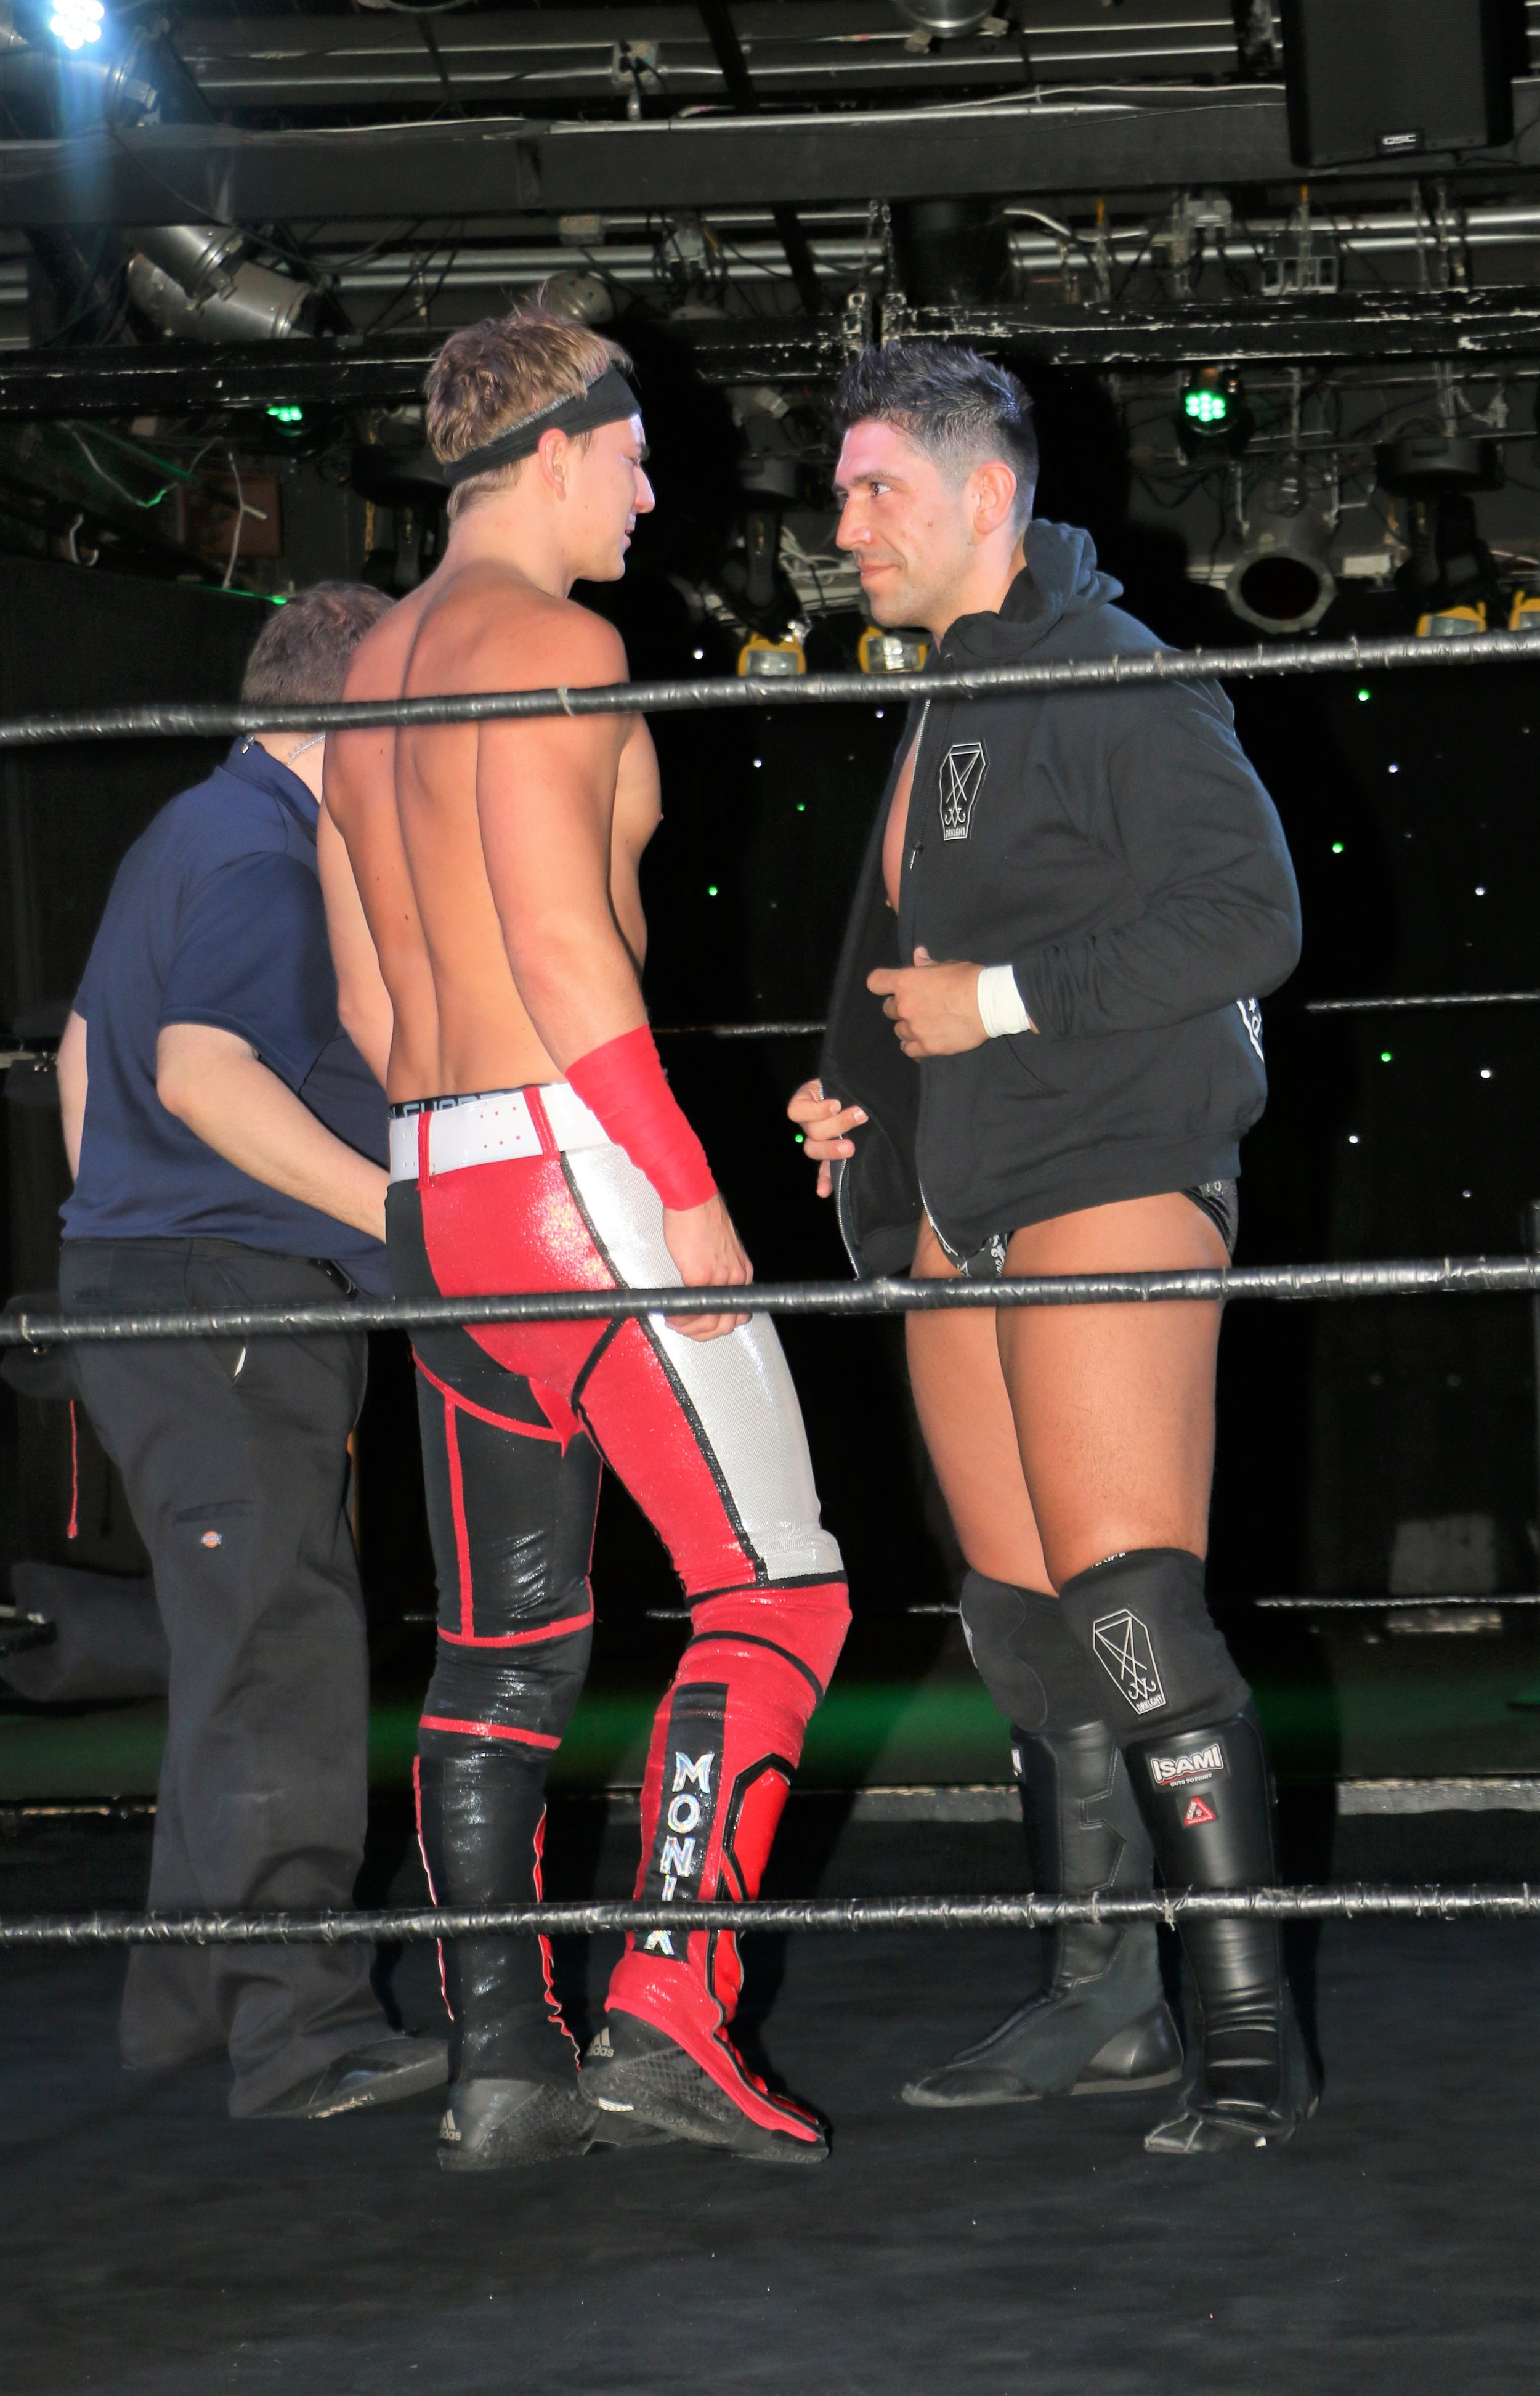 Simon Grimm, right, looks into the eyes of his rival Pat Monix.